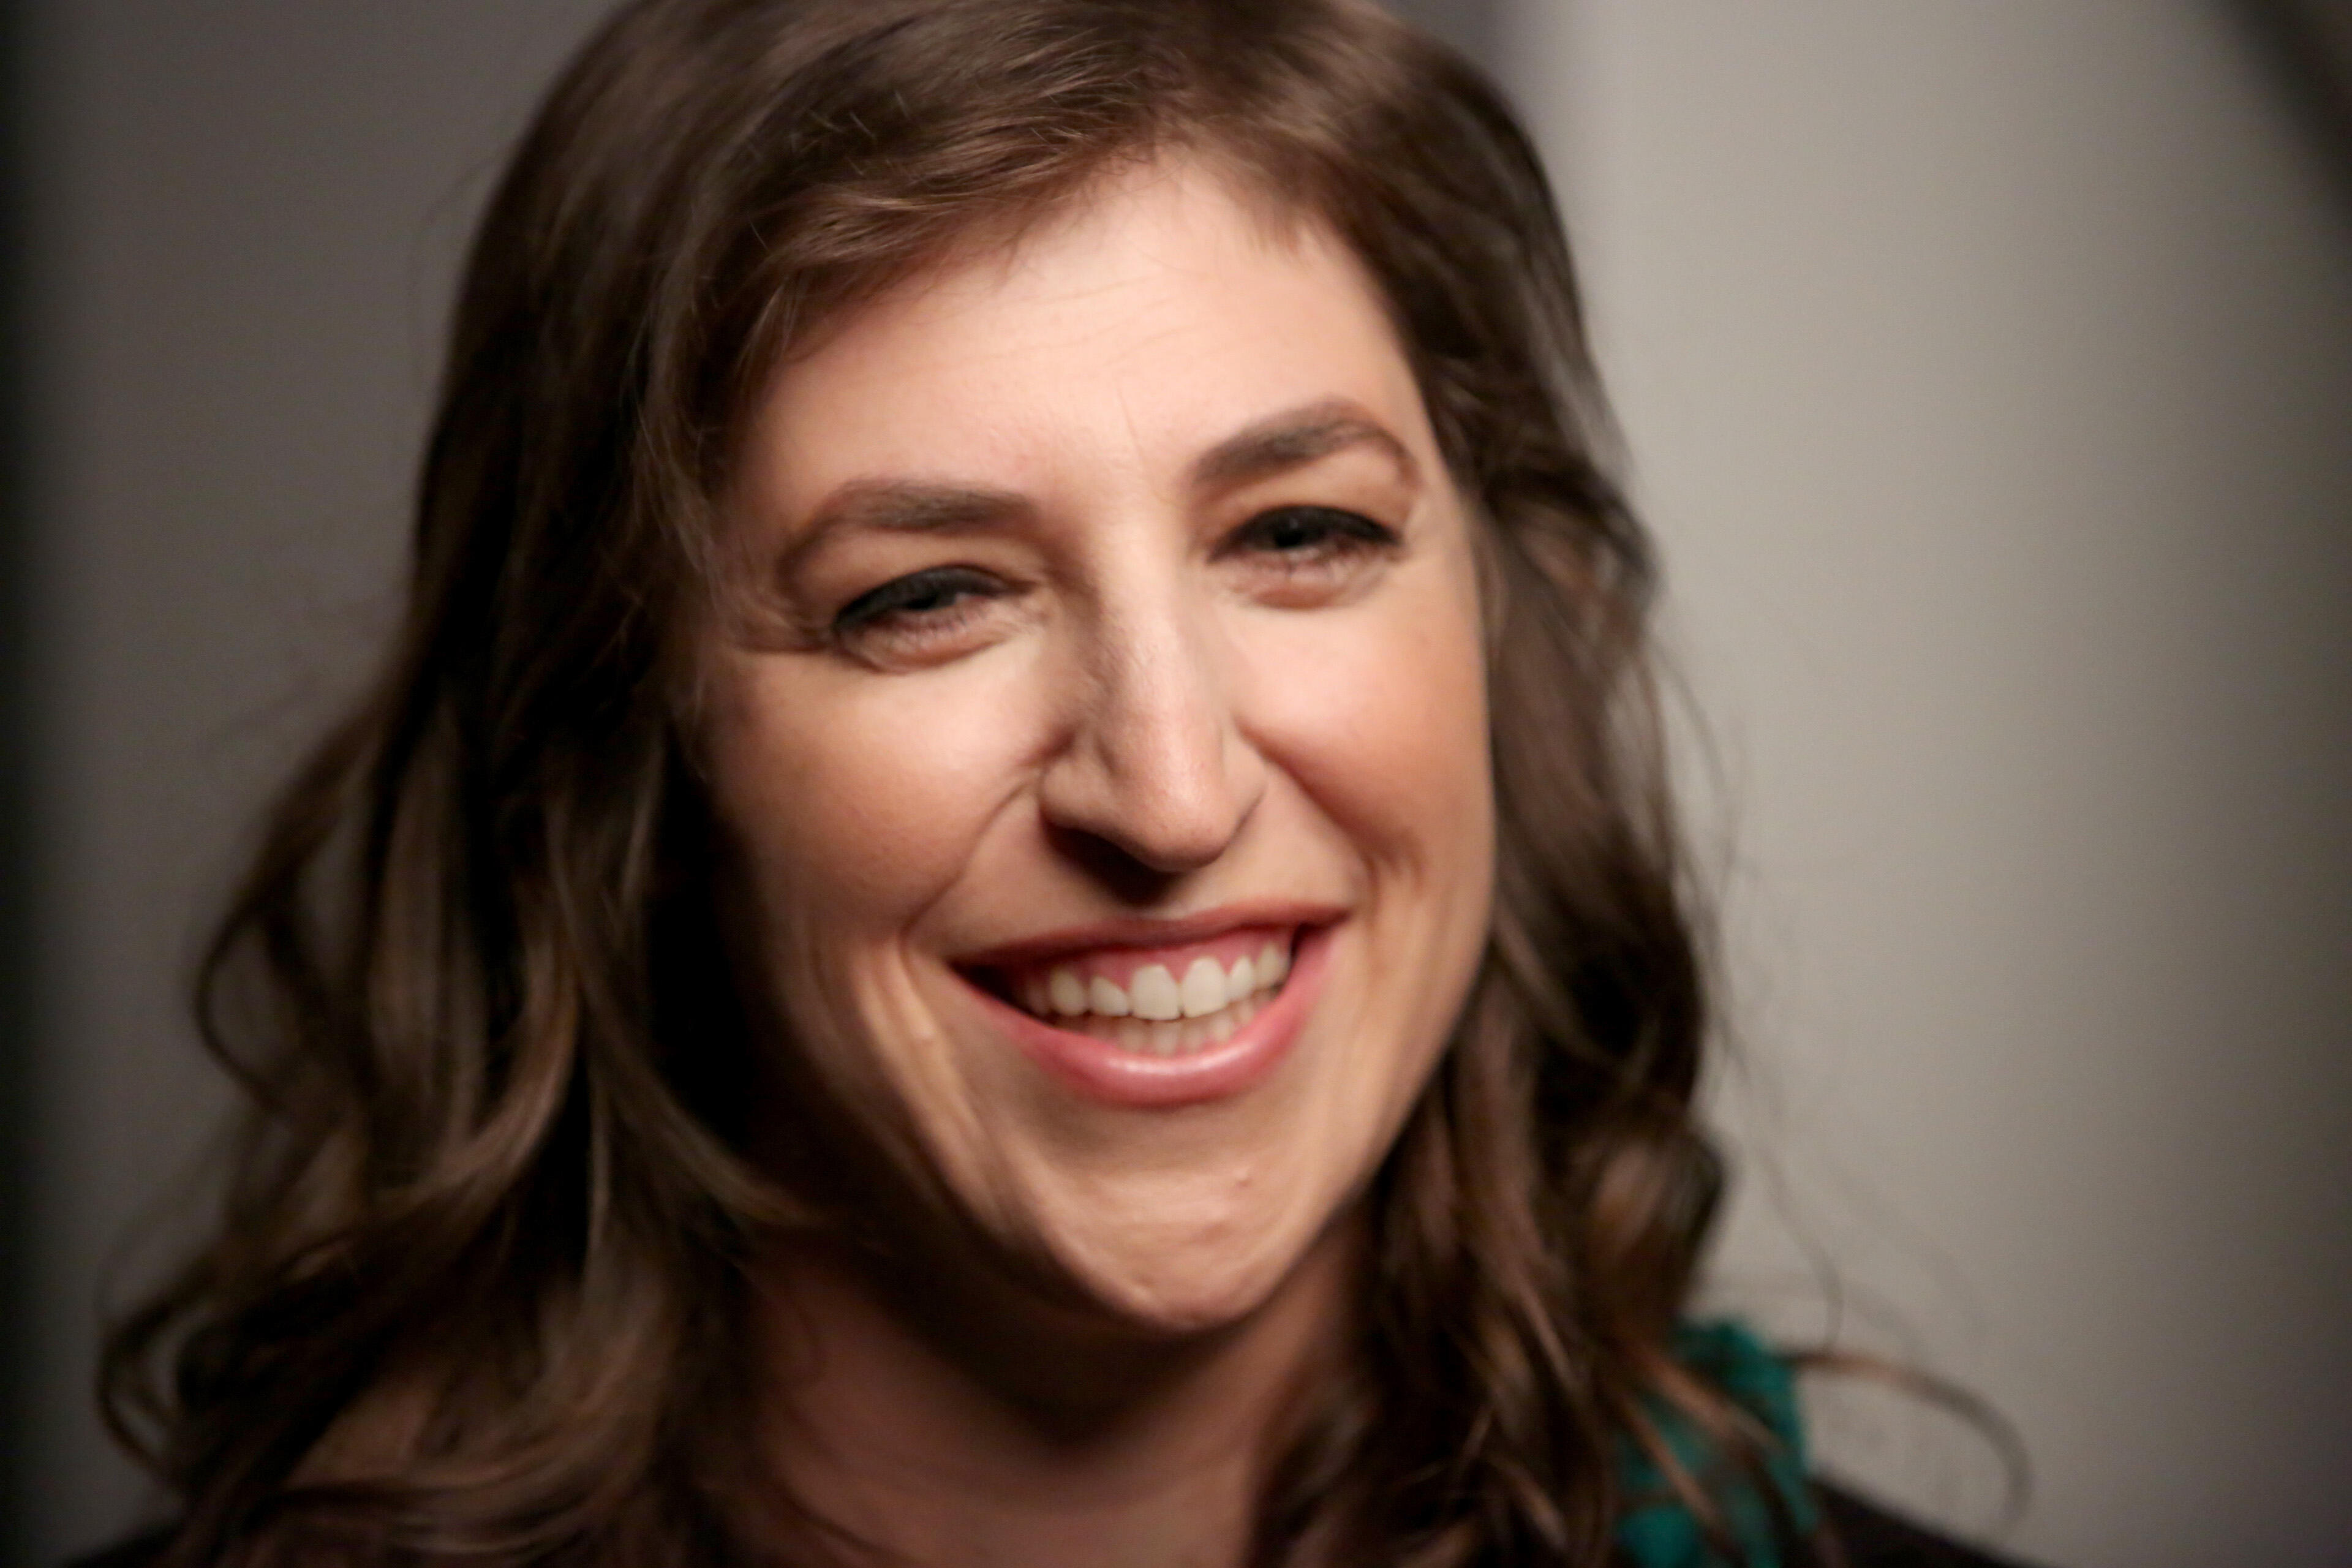 Ohio Woman To Compete On 'Jeopardy!' Episode Hosted By Mayim Bialik   iHeartRadio